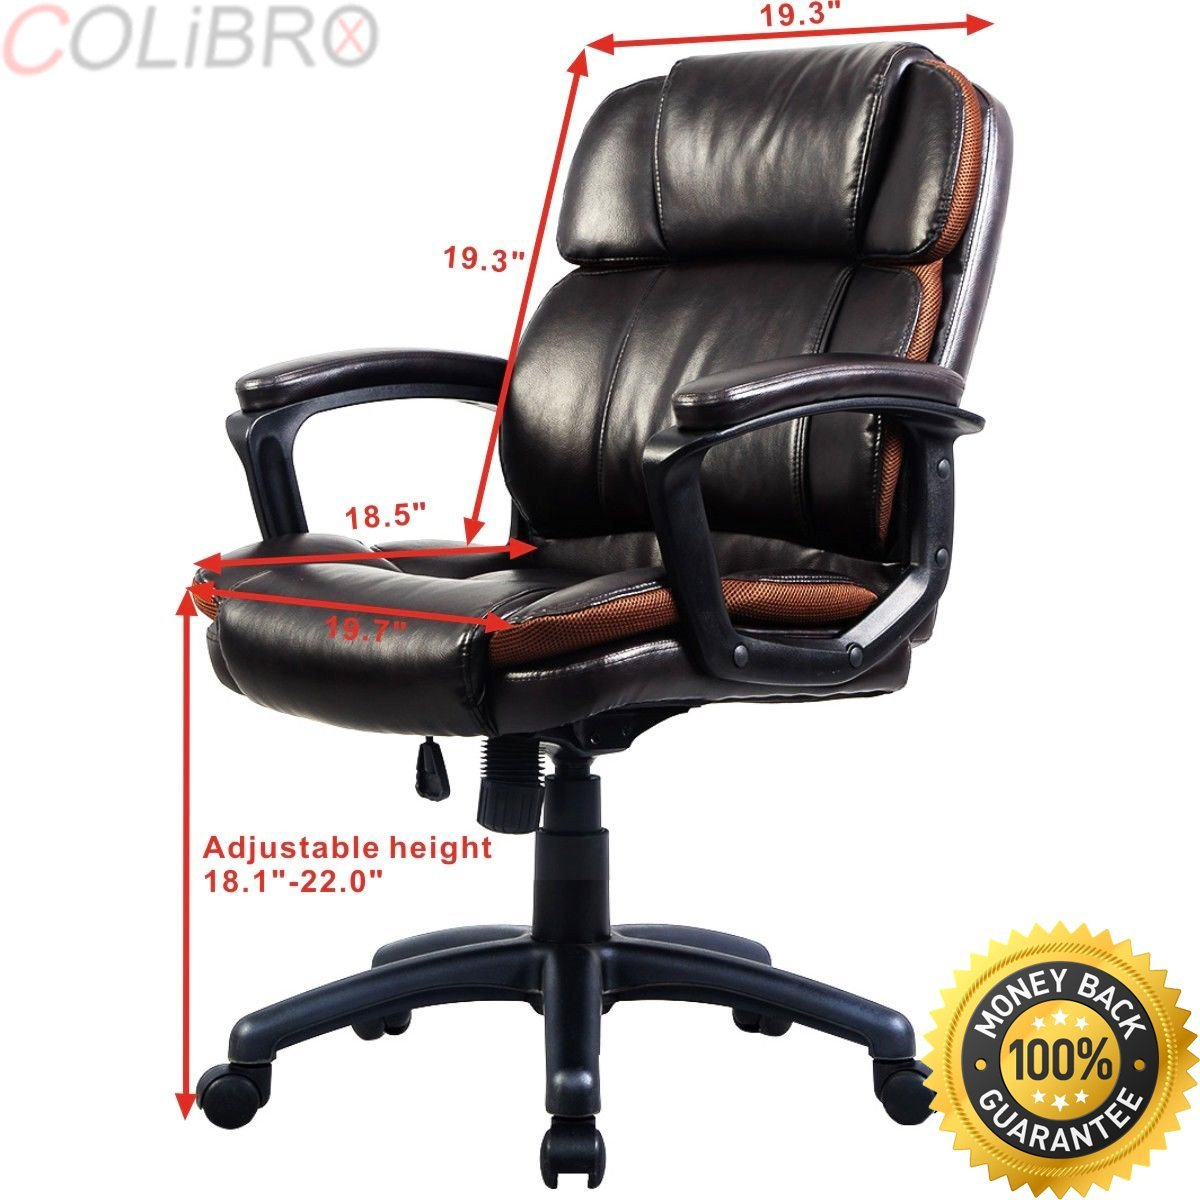 COLIBROX--Ergonomic PU Leather Mid-Back Executive Computer Desk Task Office Chair New.bestoffice ergonomic pu leather high back office chair.high back executive chair with headrest.high back computer.